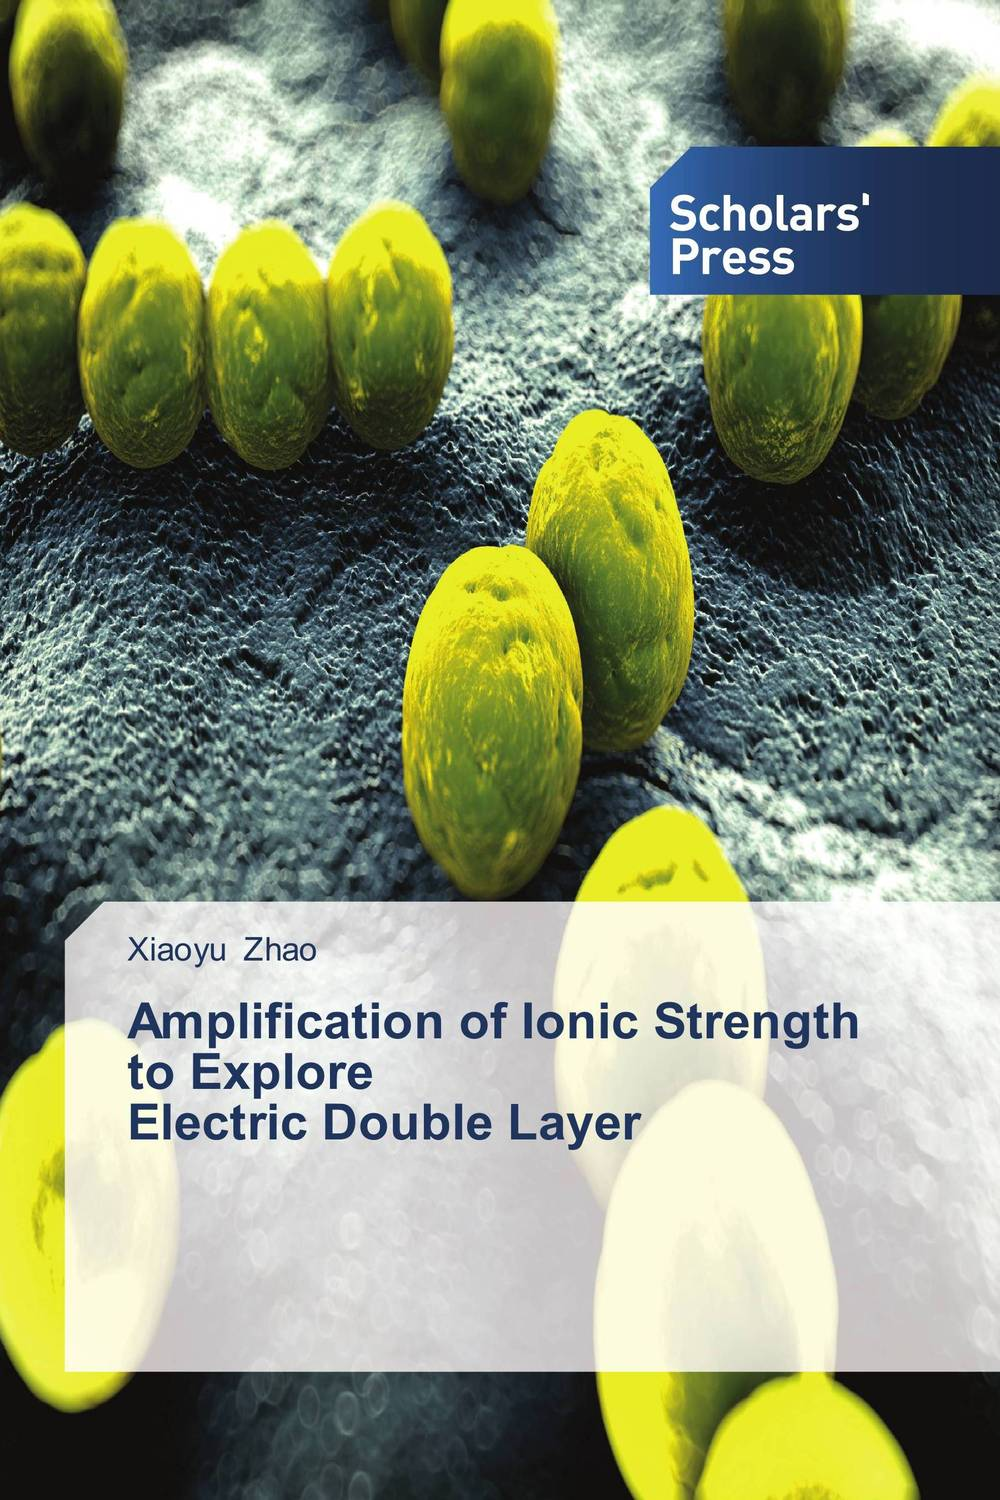 Amplification of Ionic Strength to Explore Electric Double Layer фен elchim 3900 healthy ionic red 03073 07